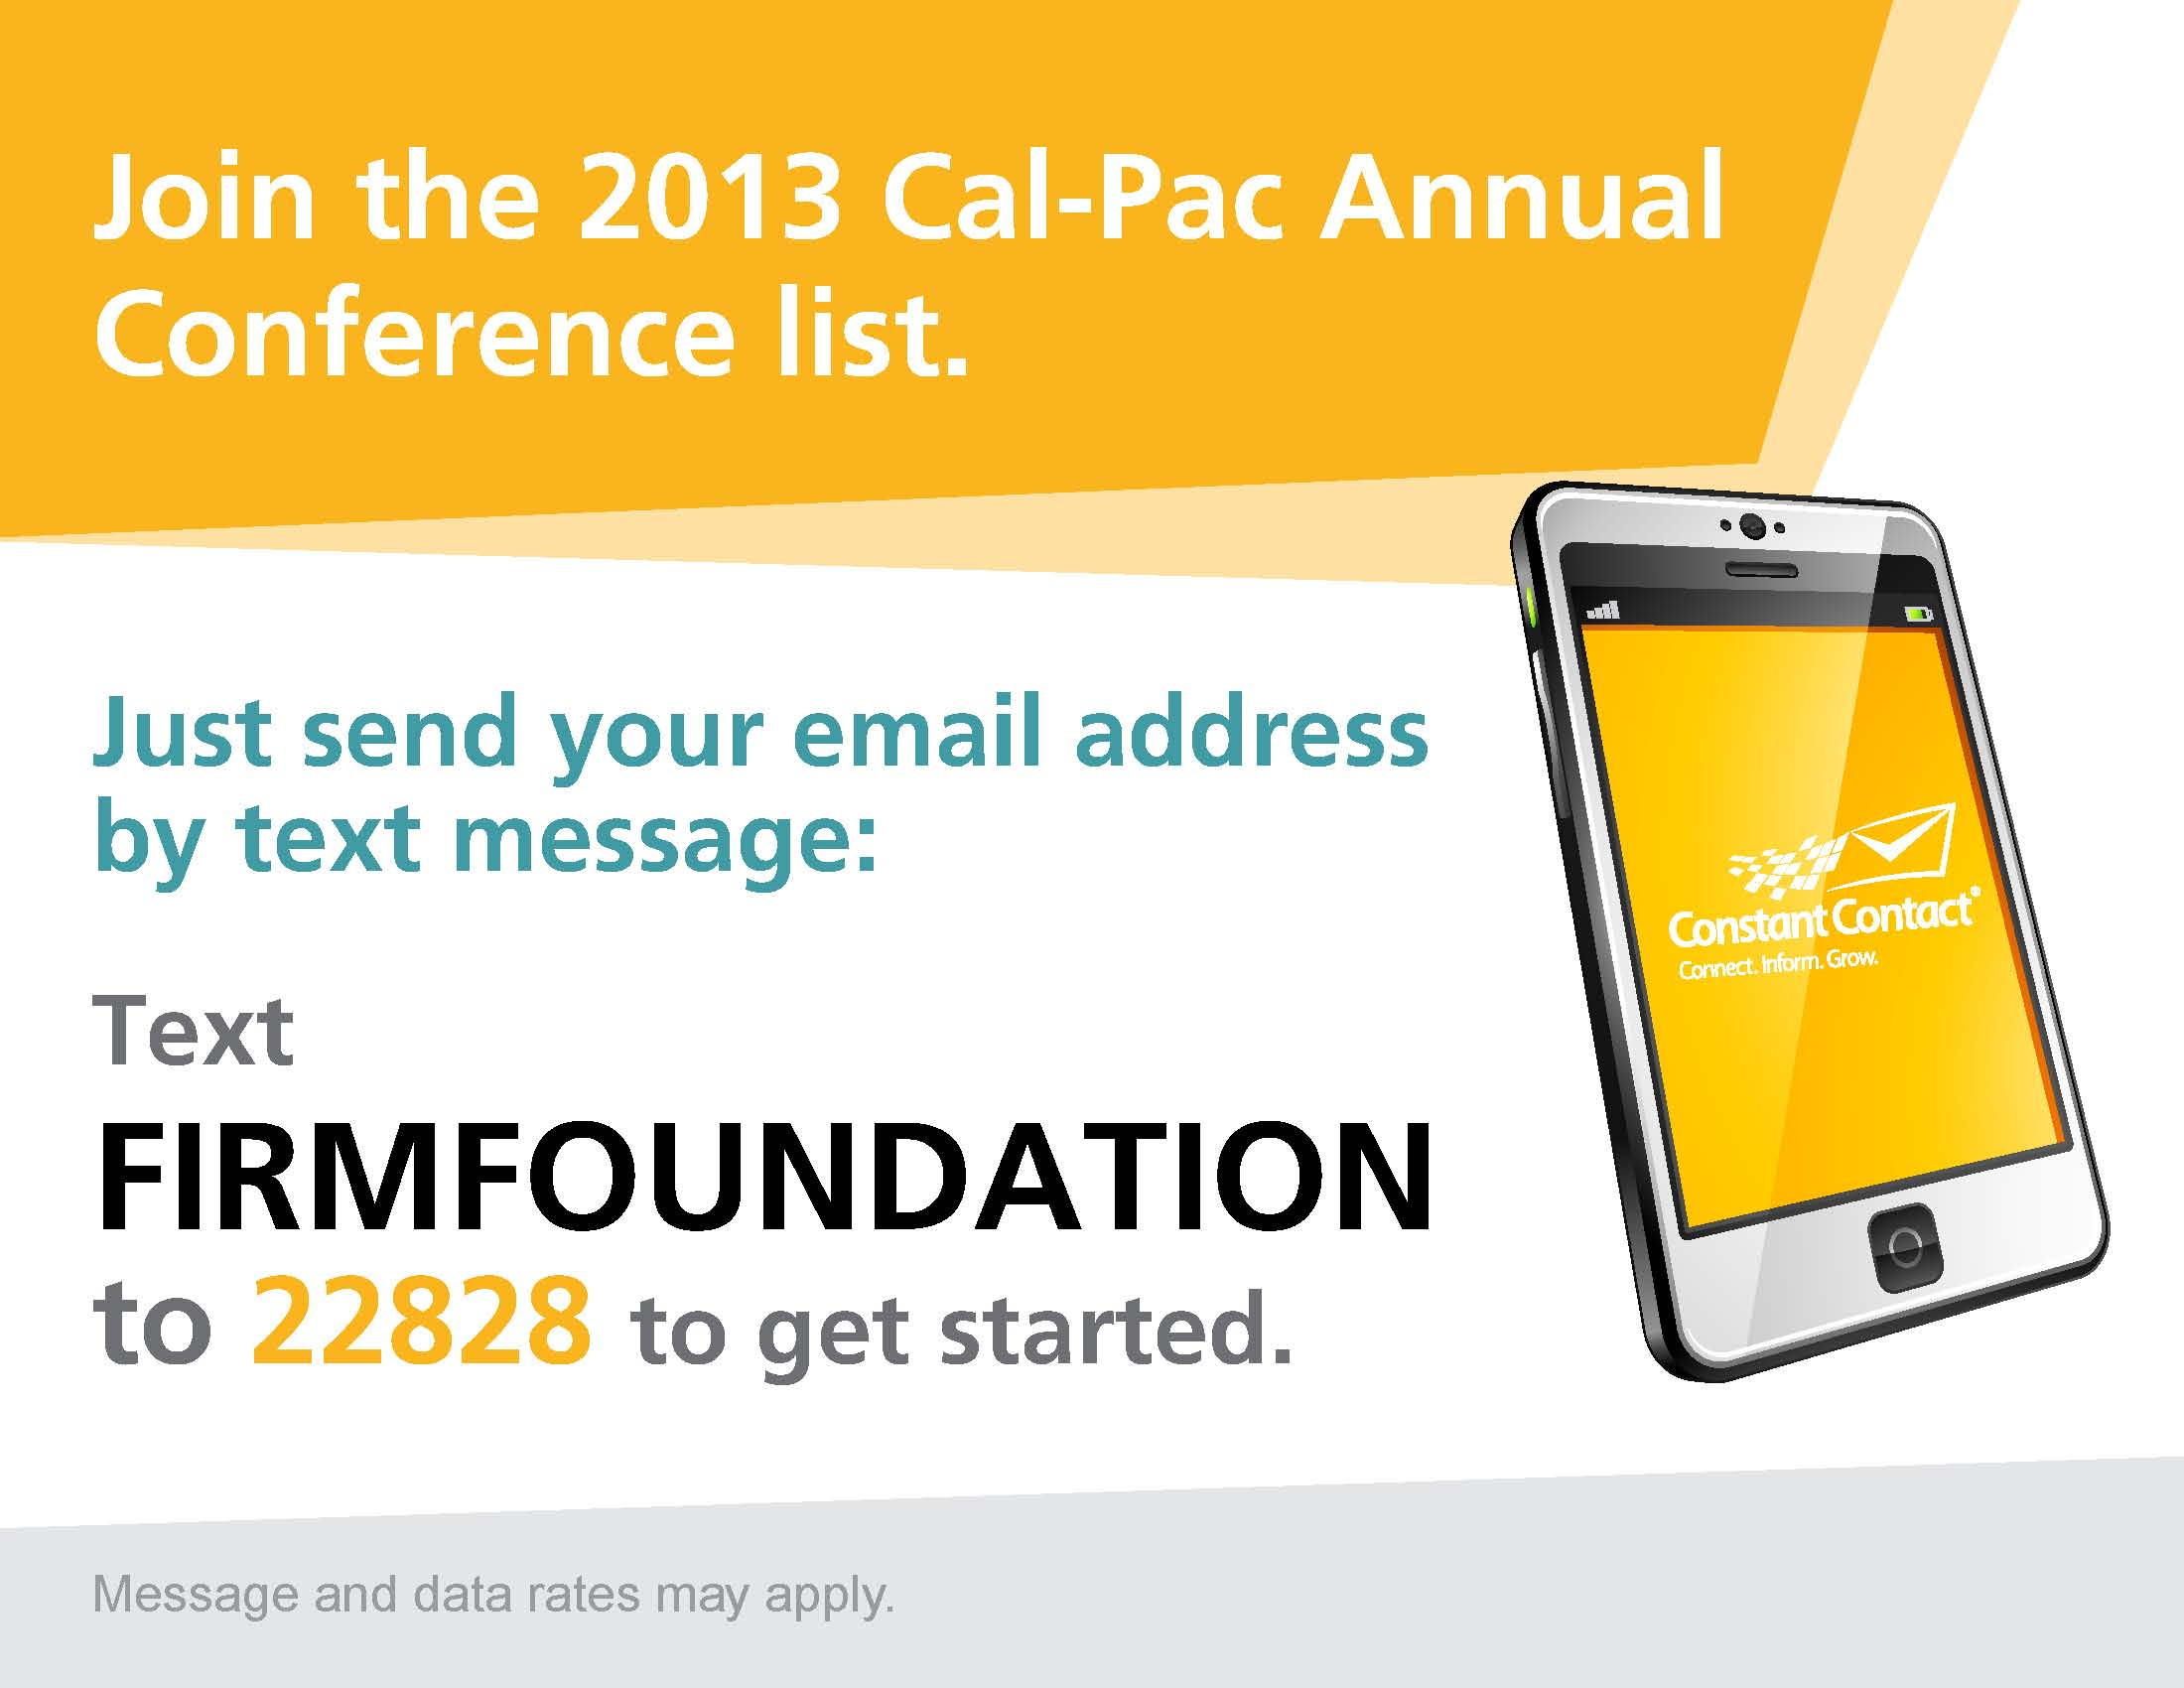 Text FIRMFOUNDATION to 2282